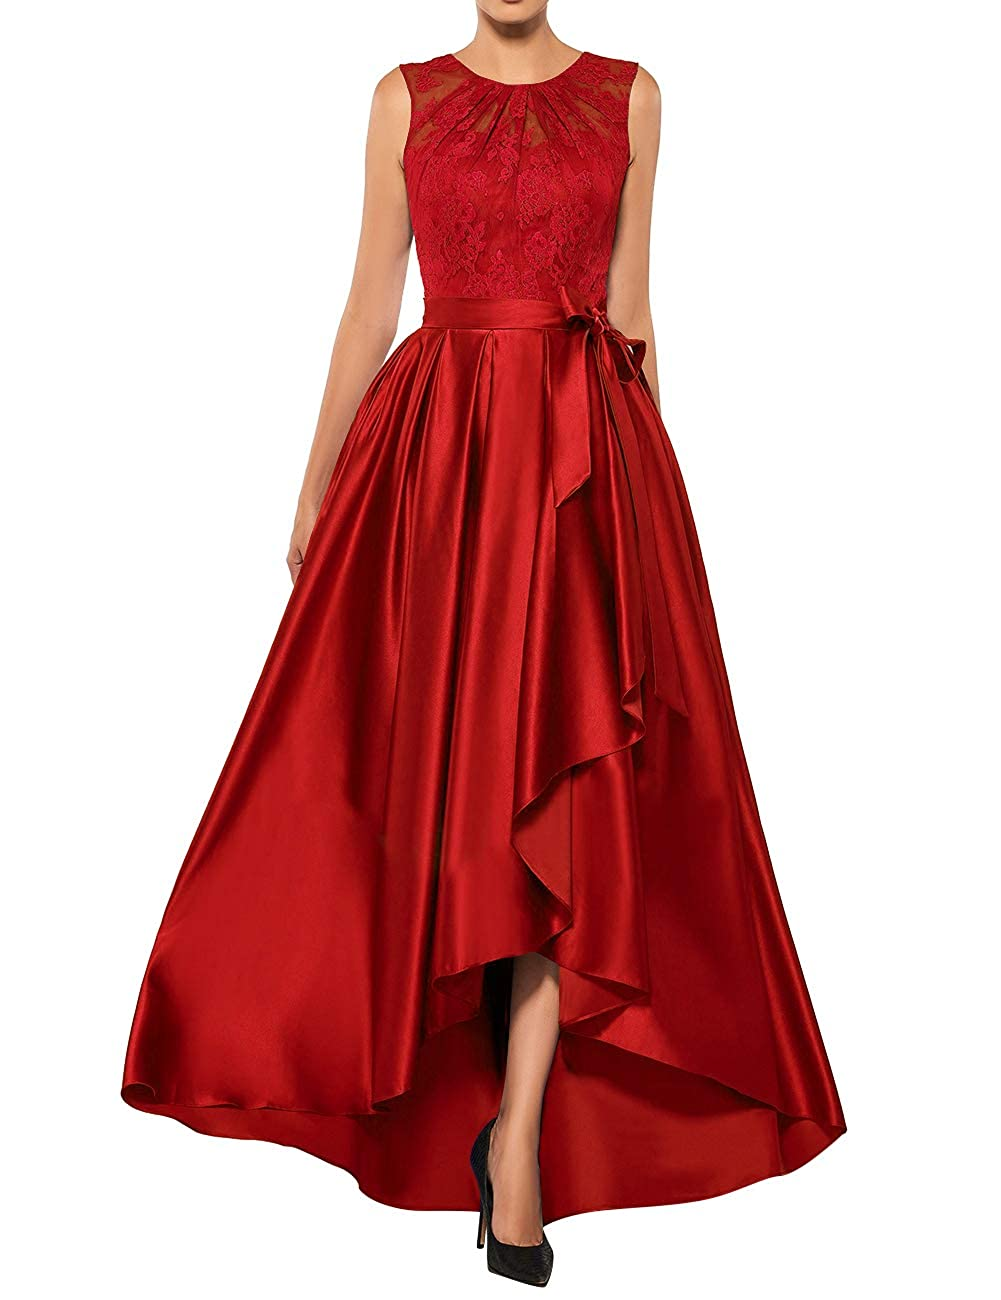 Red Mother The Bride Dresses Lace High Low Formal Evening Party Gown A Line Prom